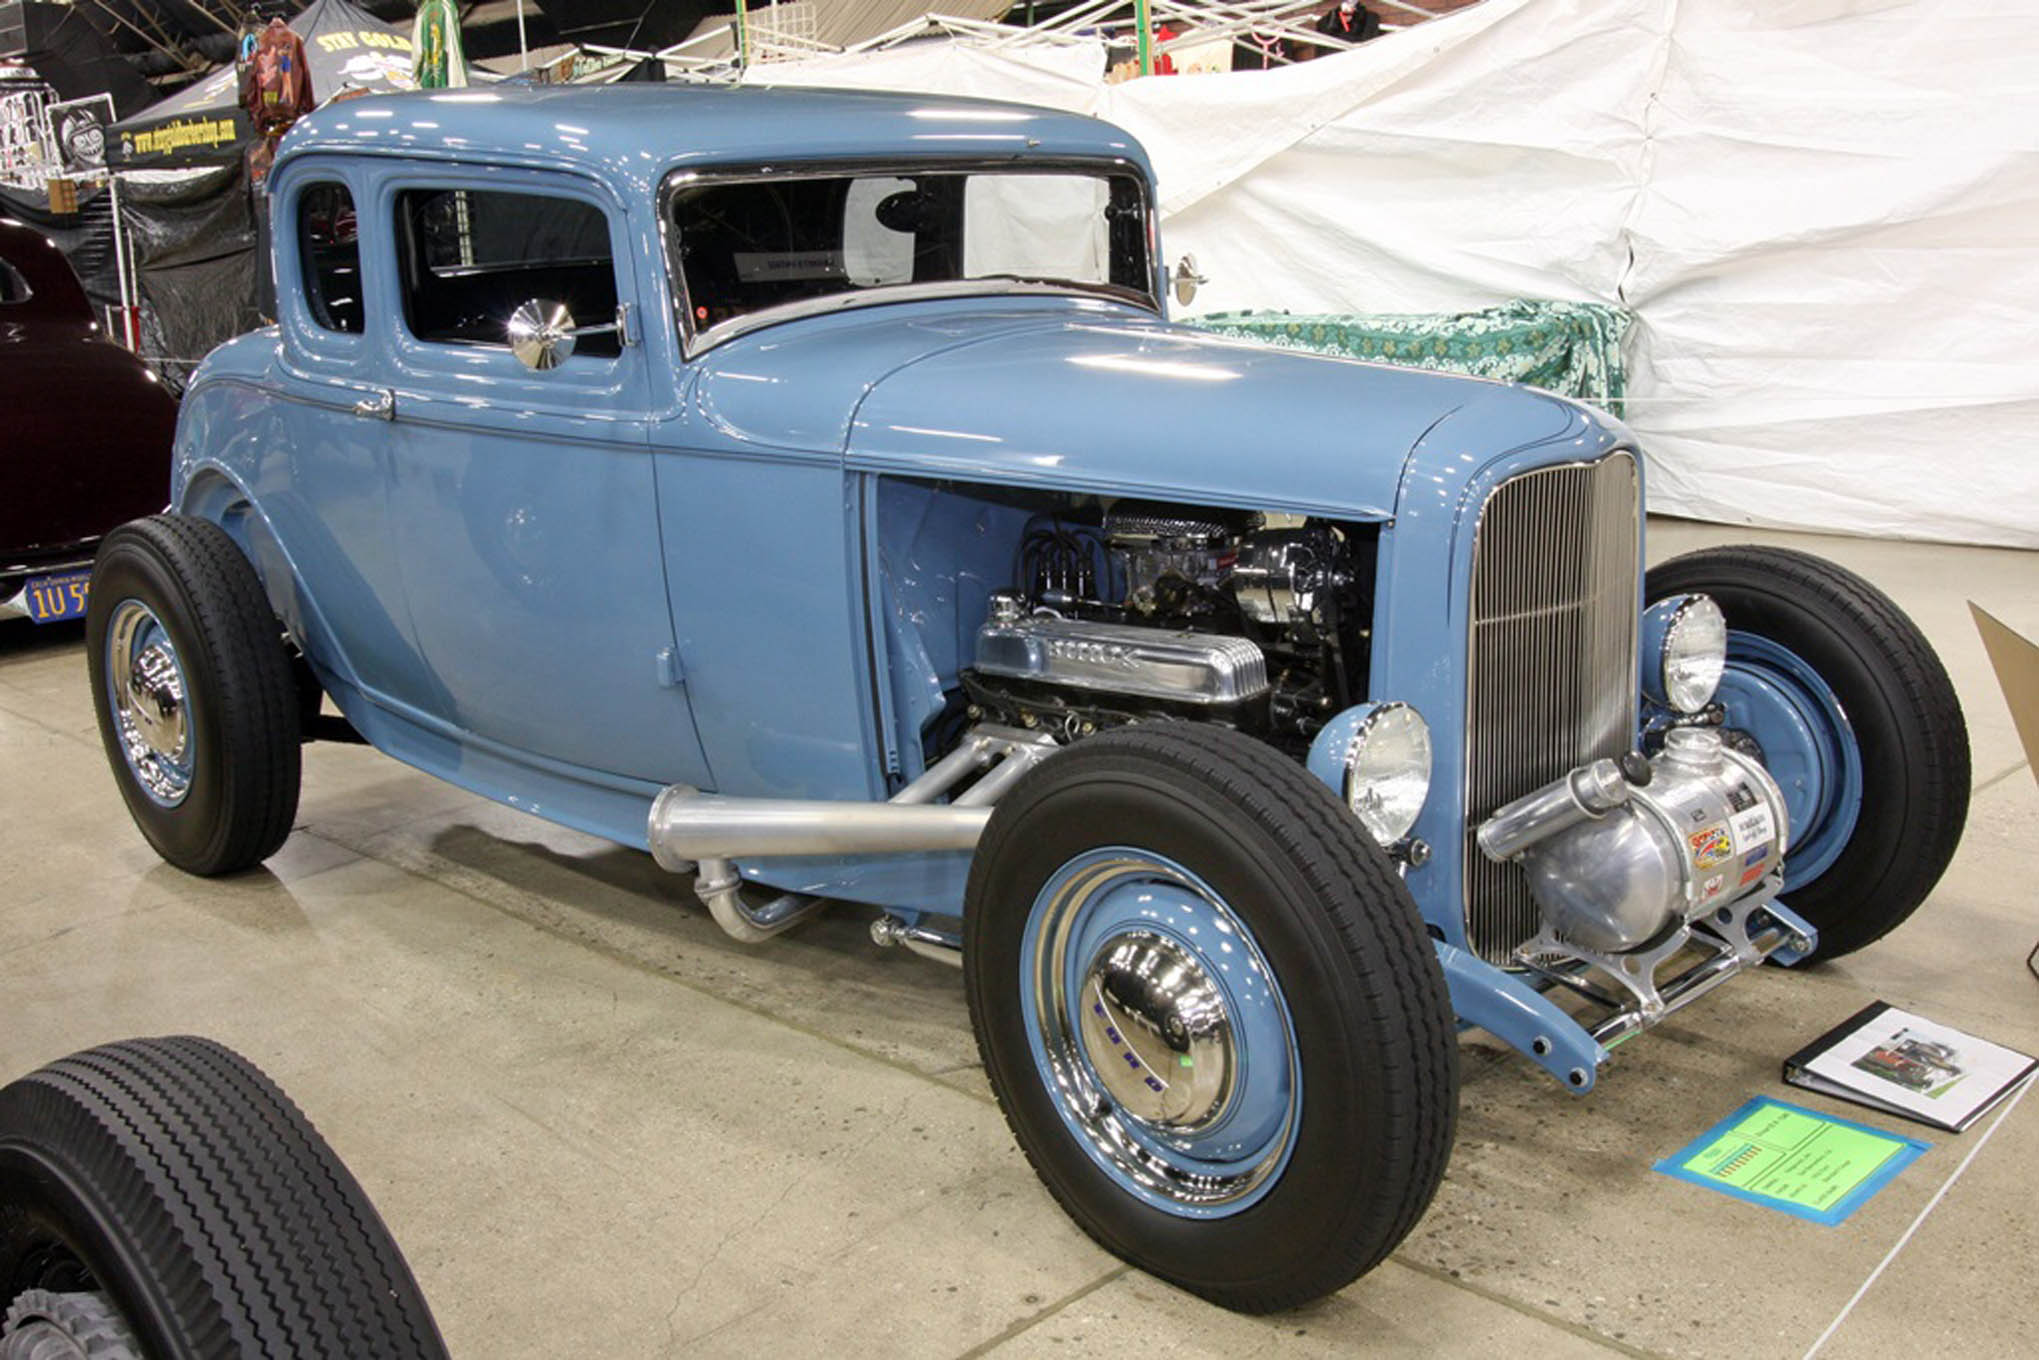 More nice low-key pinstriping can be found on Jim Siegmund's light blue 1932 highboy coupe from San Bernardino. Traditional details like the Moon tank, split 'bones, quick-change rearend, and megaphone headers are just right, and the Buick Nailhead is a great engine choice.